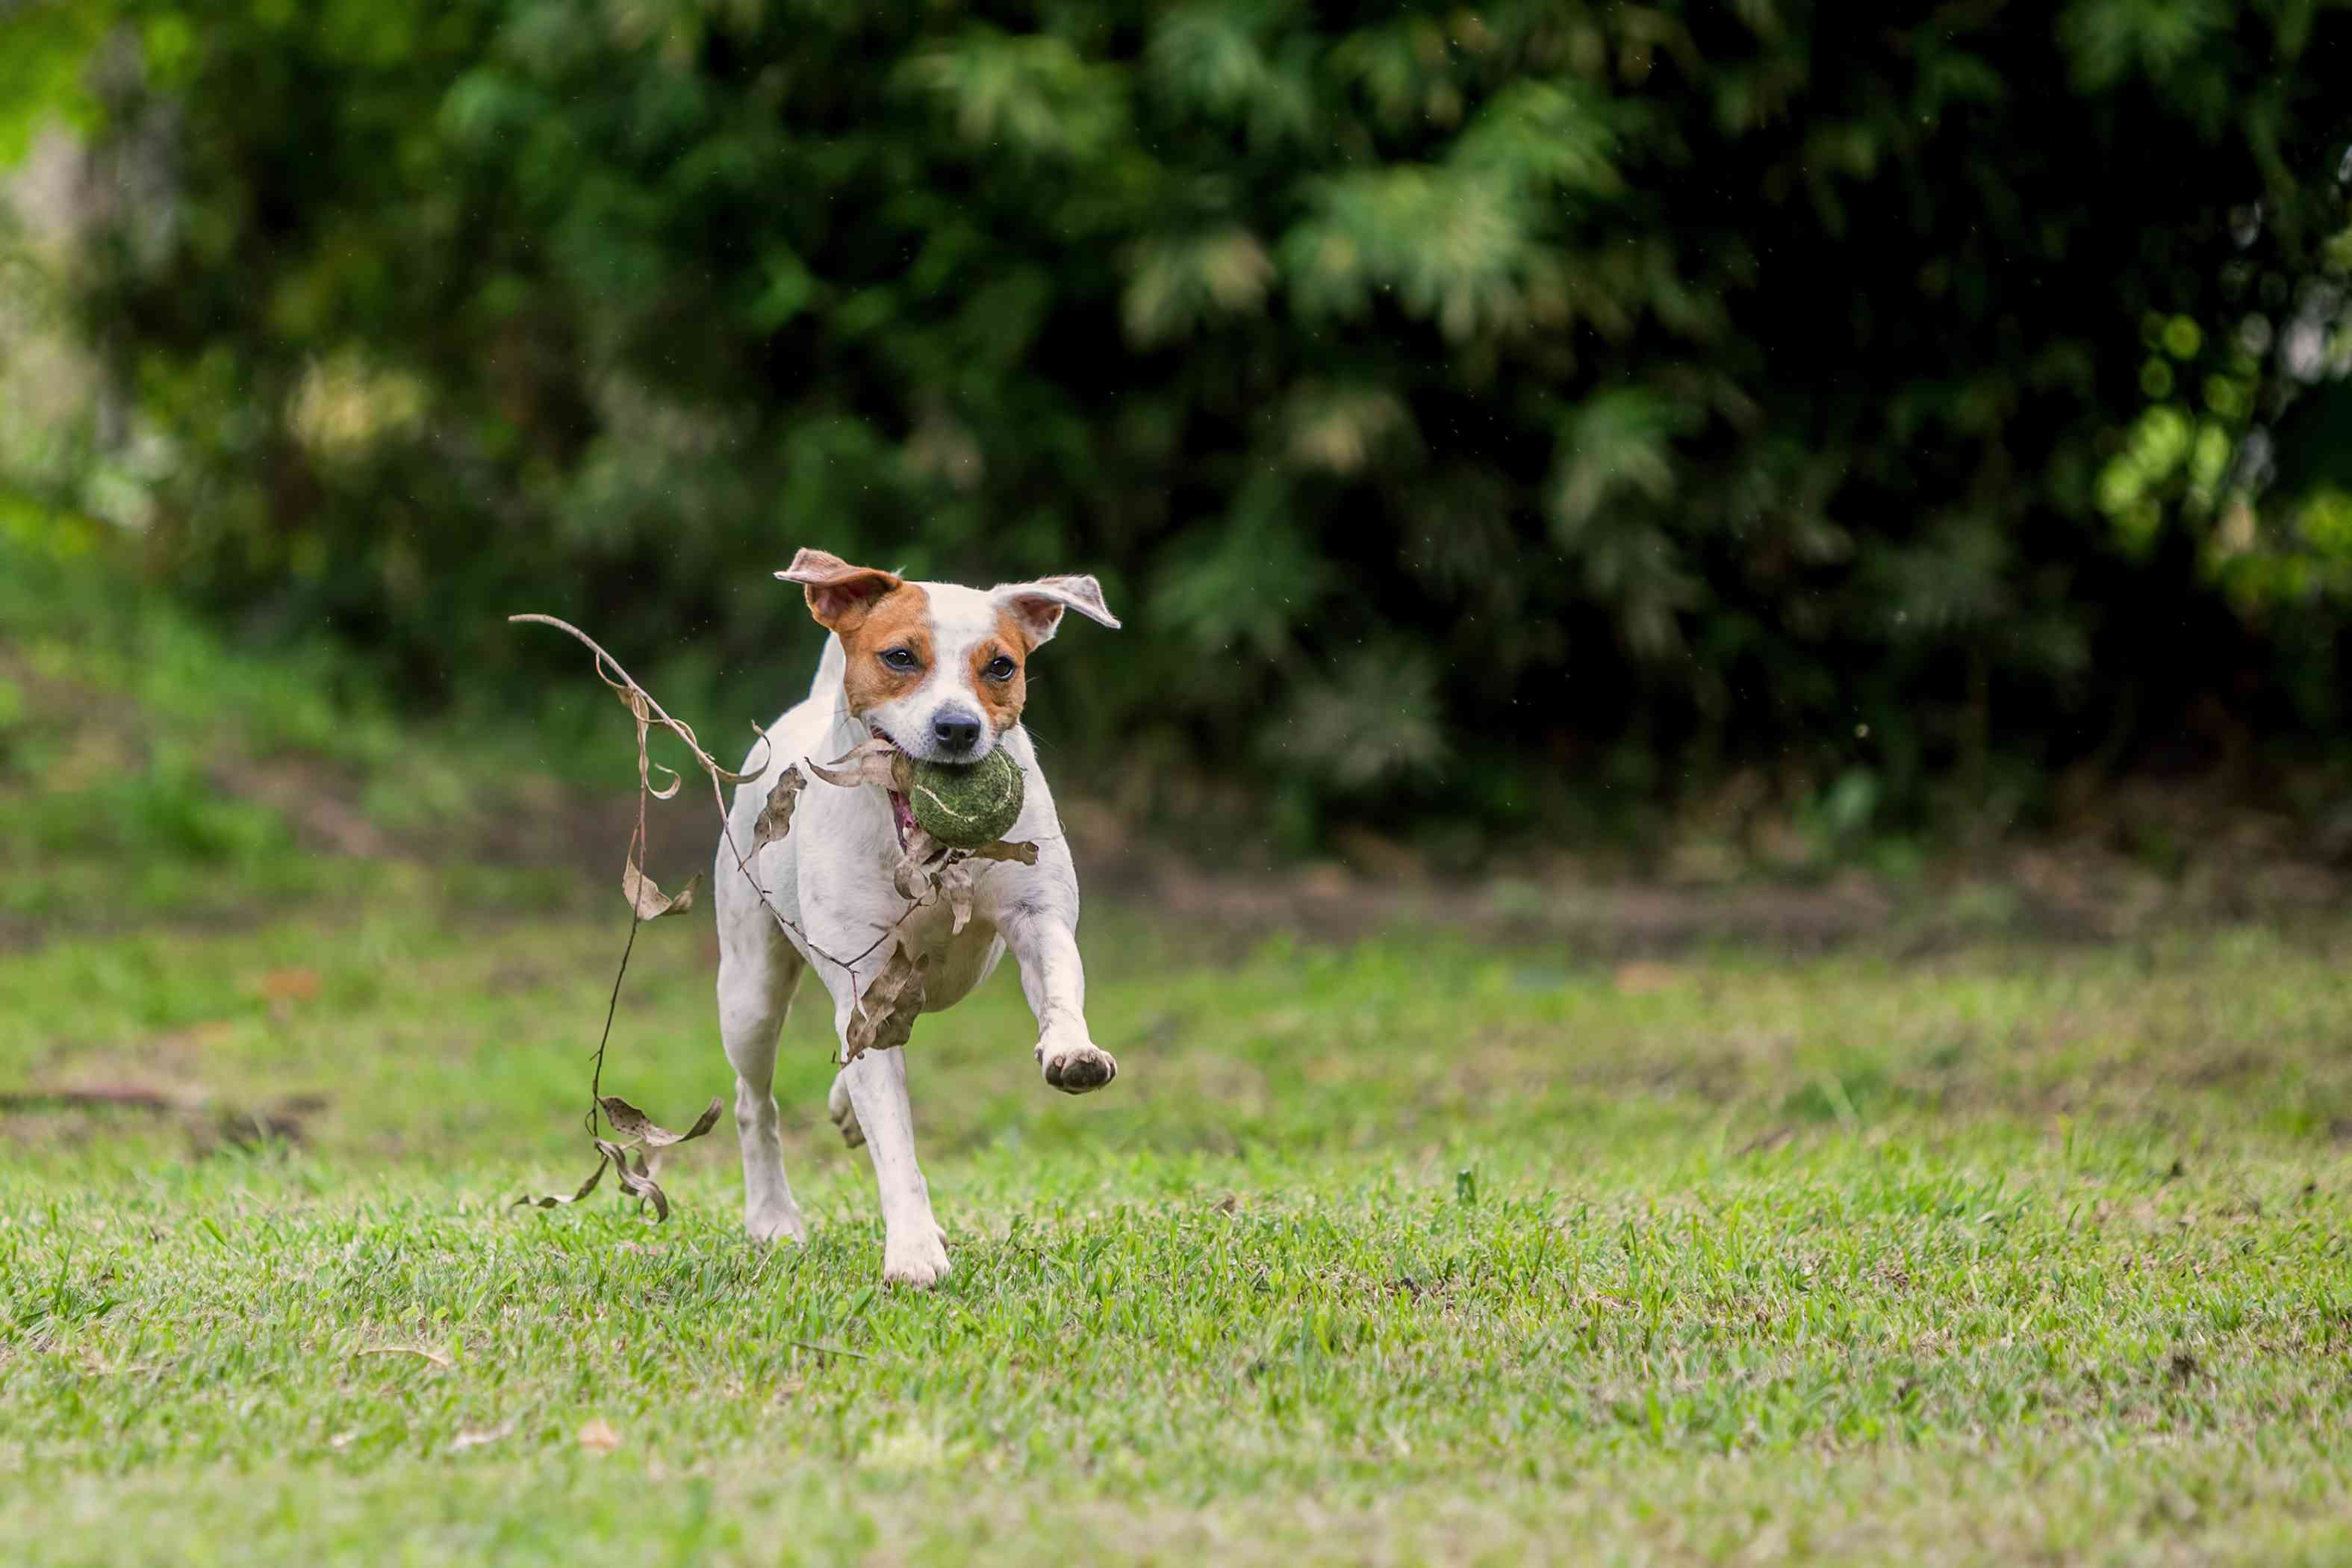 parson russell terrier dog running fast holding tennis ball and stick with leaves in mouth